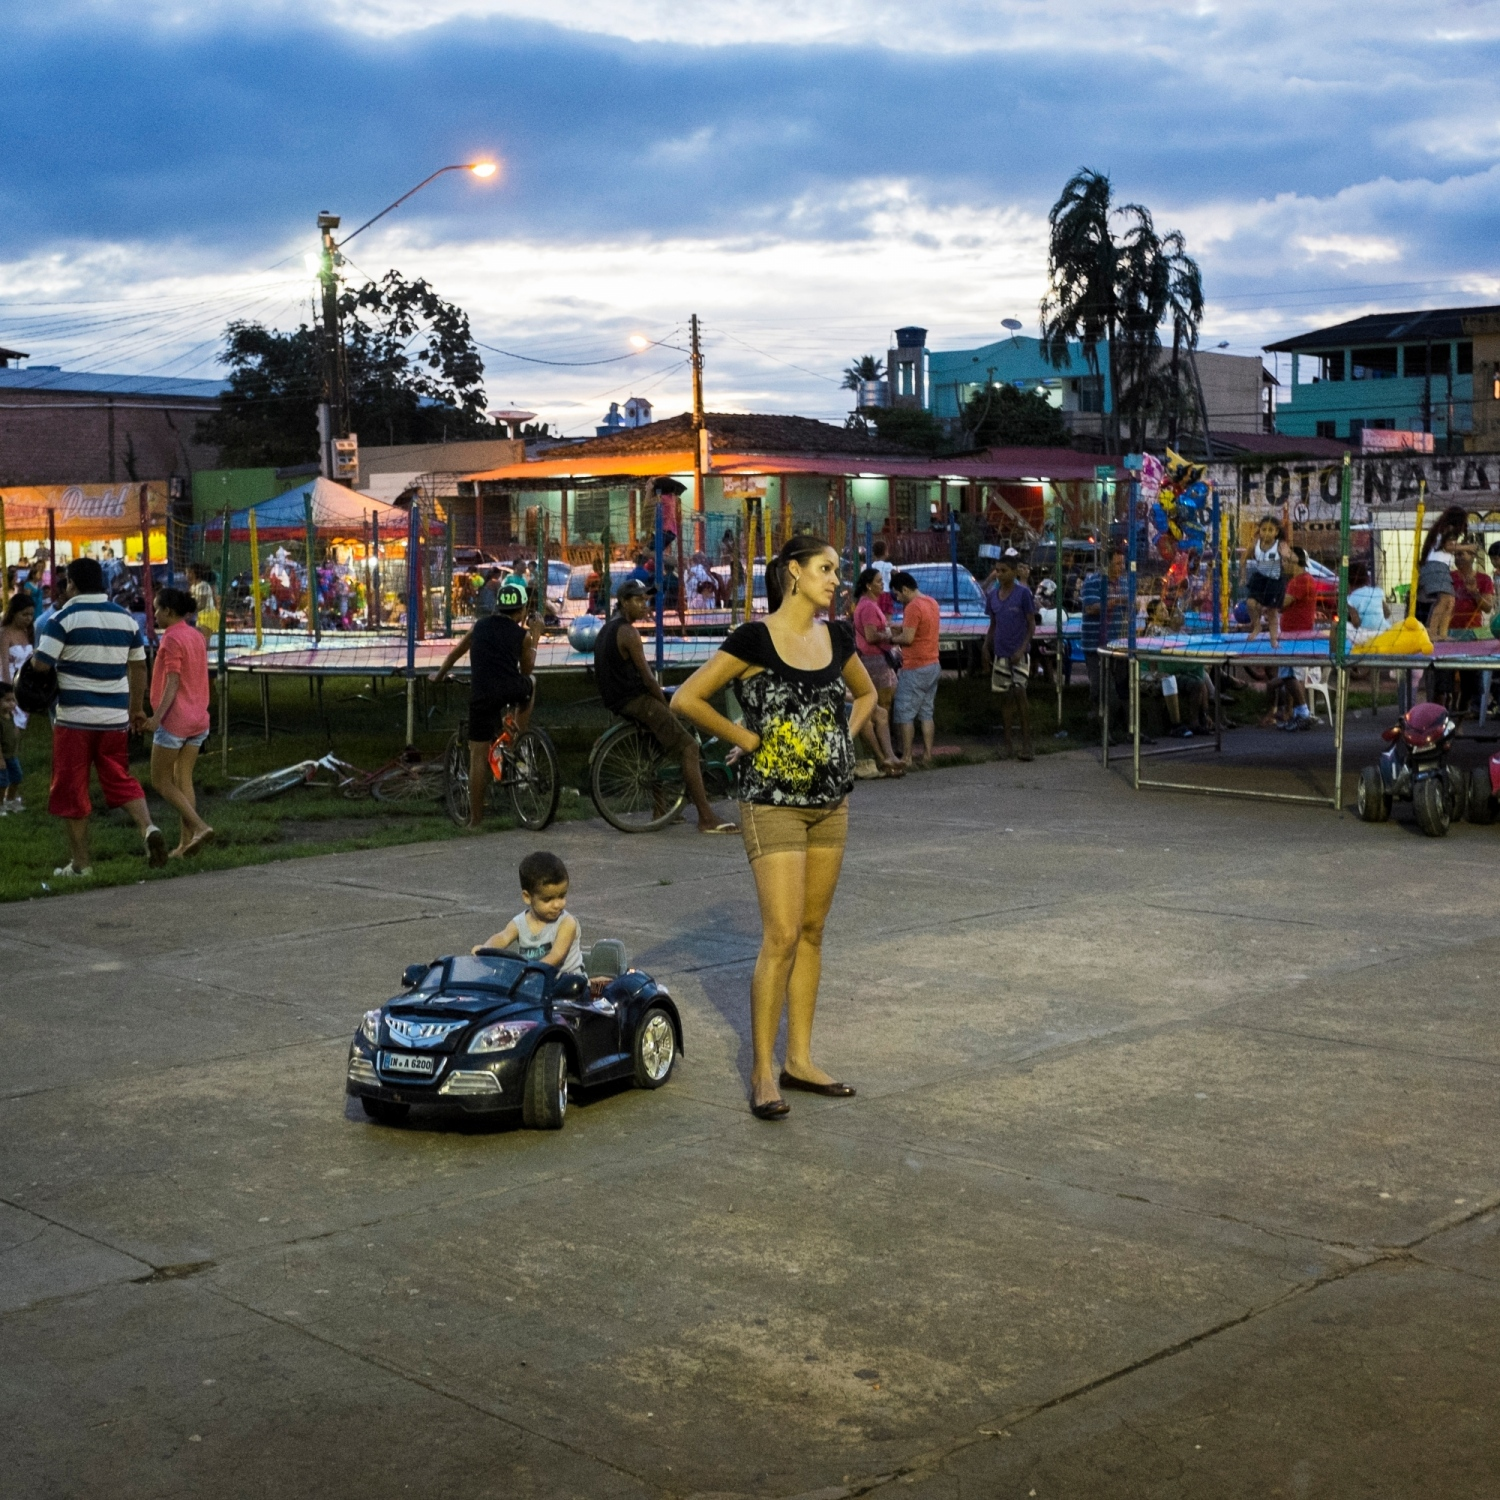 During the heart of construction for the Belo Monte Dam, the city of Altamira was a boomtown. Each weekend along the riverfront people would gather, the restaurants and bars would be packed, and entertainers would perform. Here on an evening in March 2014, a child drives an electric miniature car while her mother watches a performance in the square. Now that construction has been completed, the riverfront is empty most nights.  /Aaron Vincent Elkaim